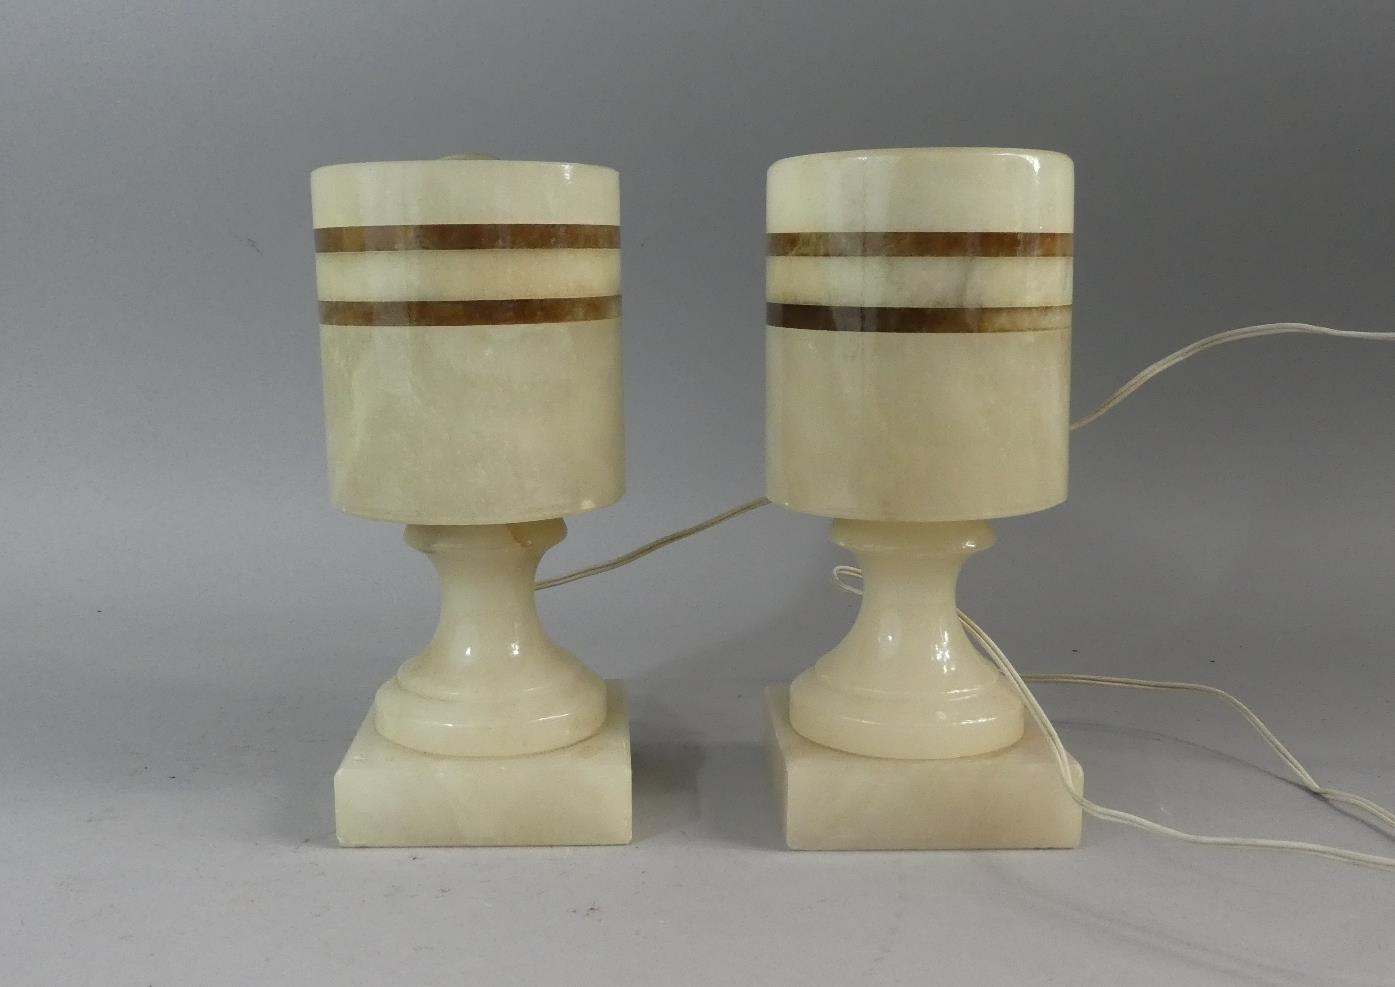 Lot 74 - A Pair of Small Art Deco Style Onyx Table Lamps, 20cm high